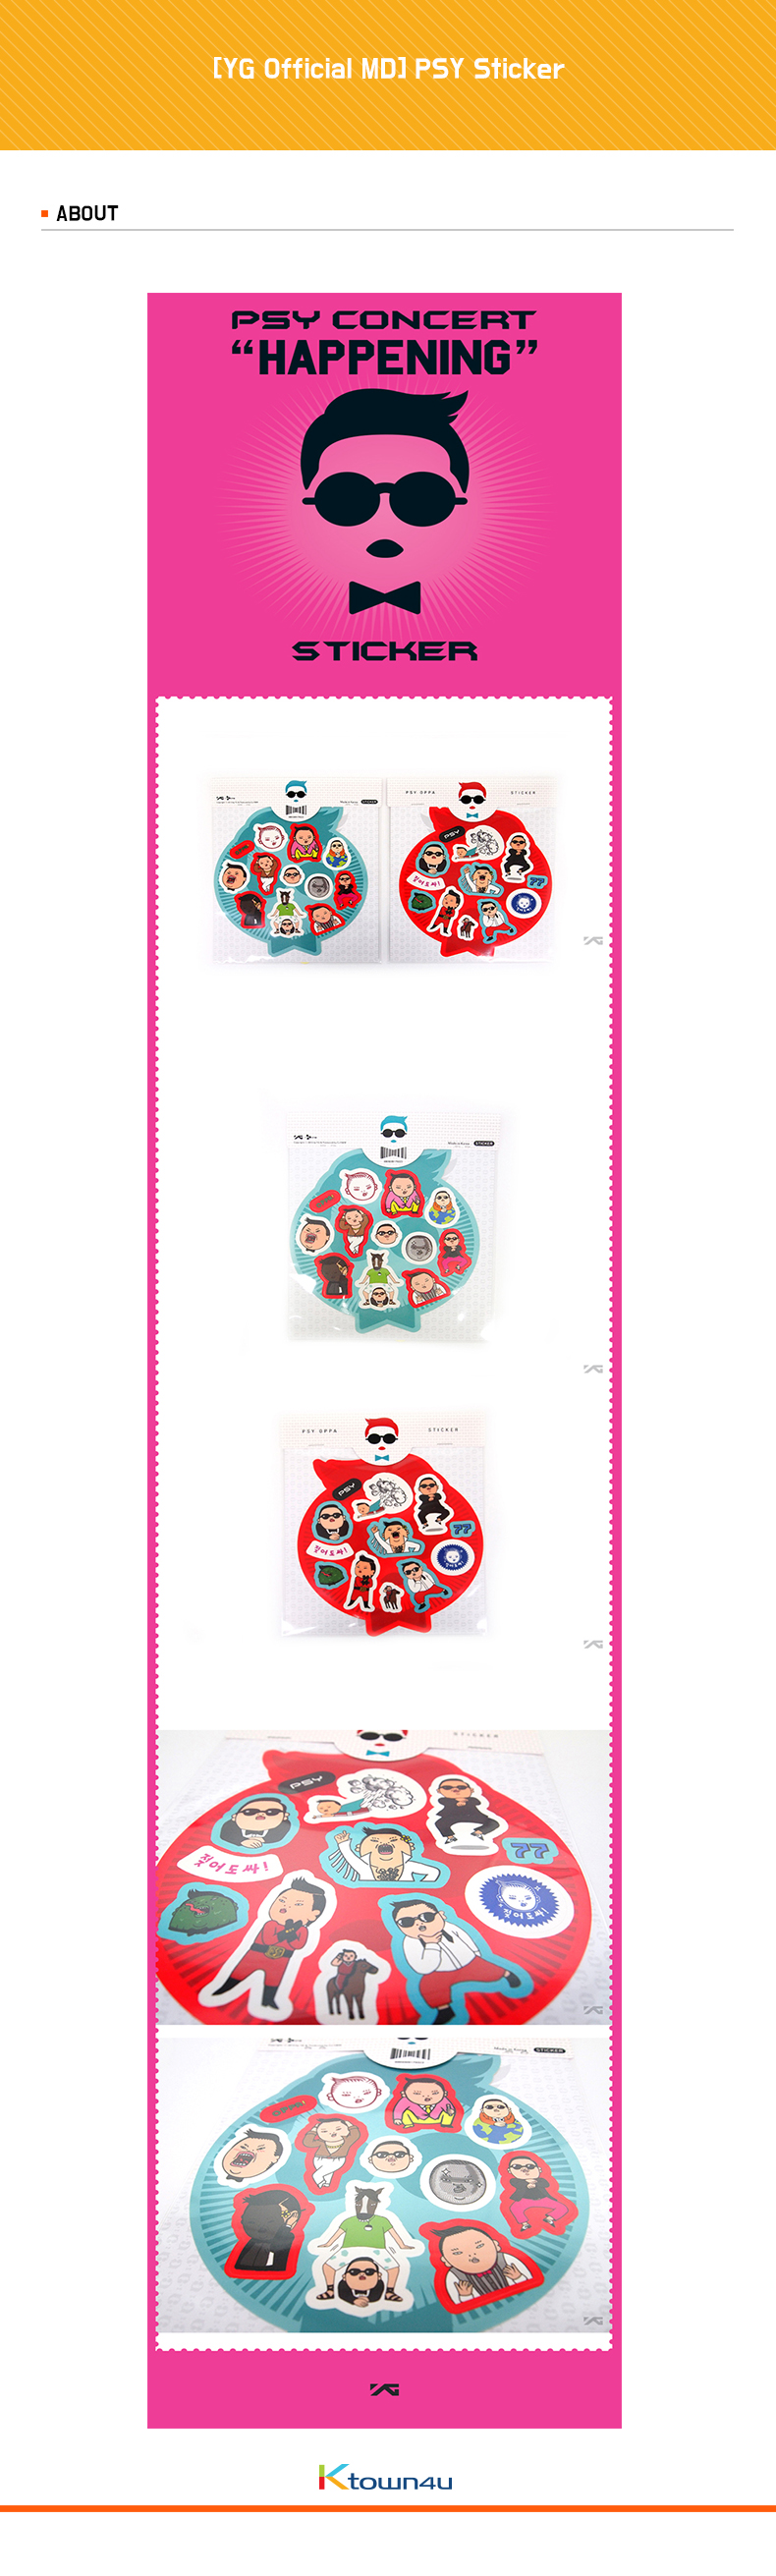 [YG Official MD] PSY Sticker